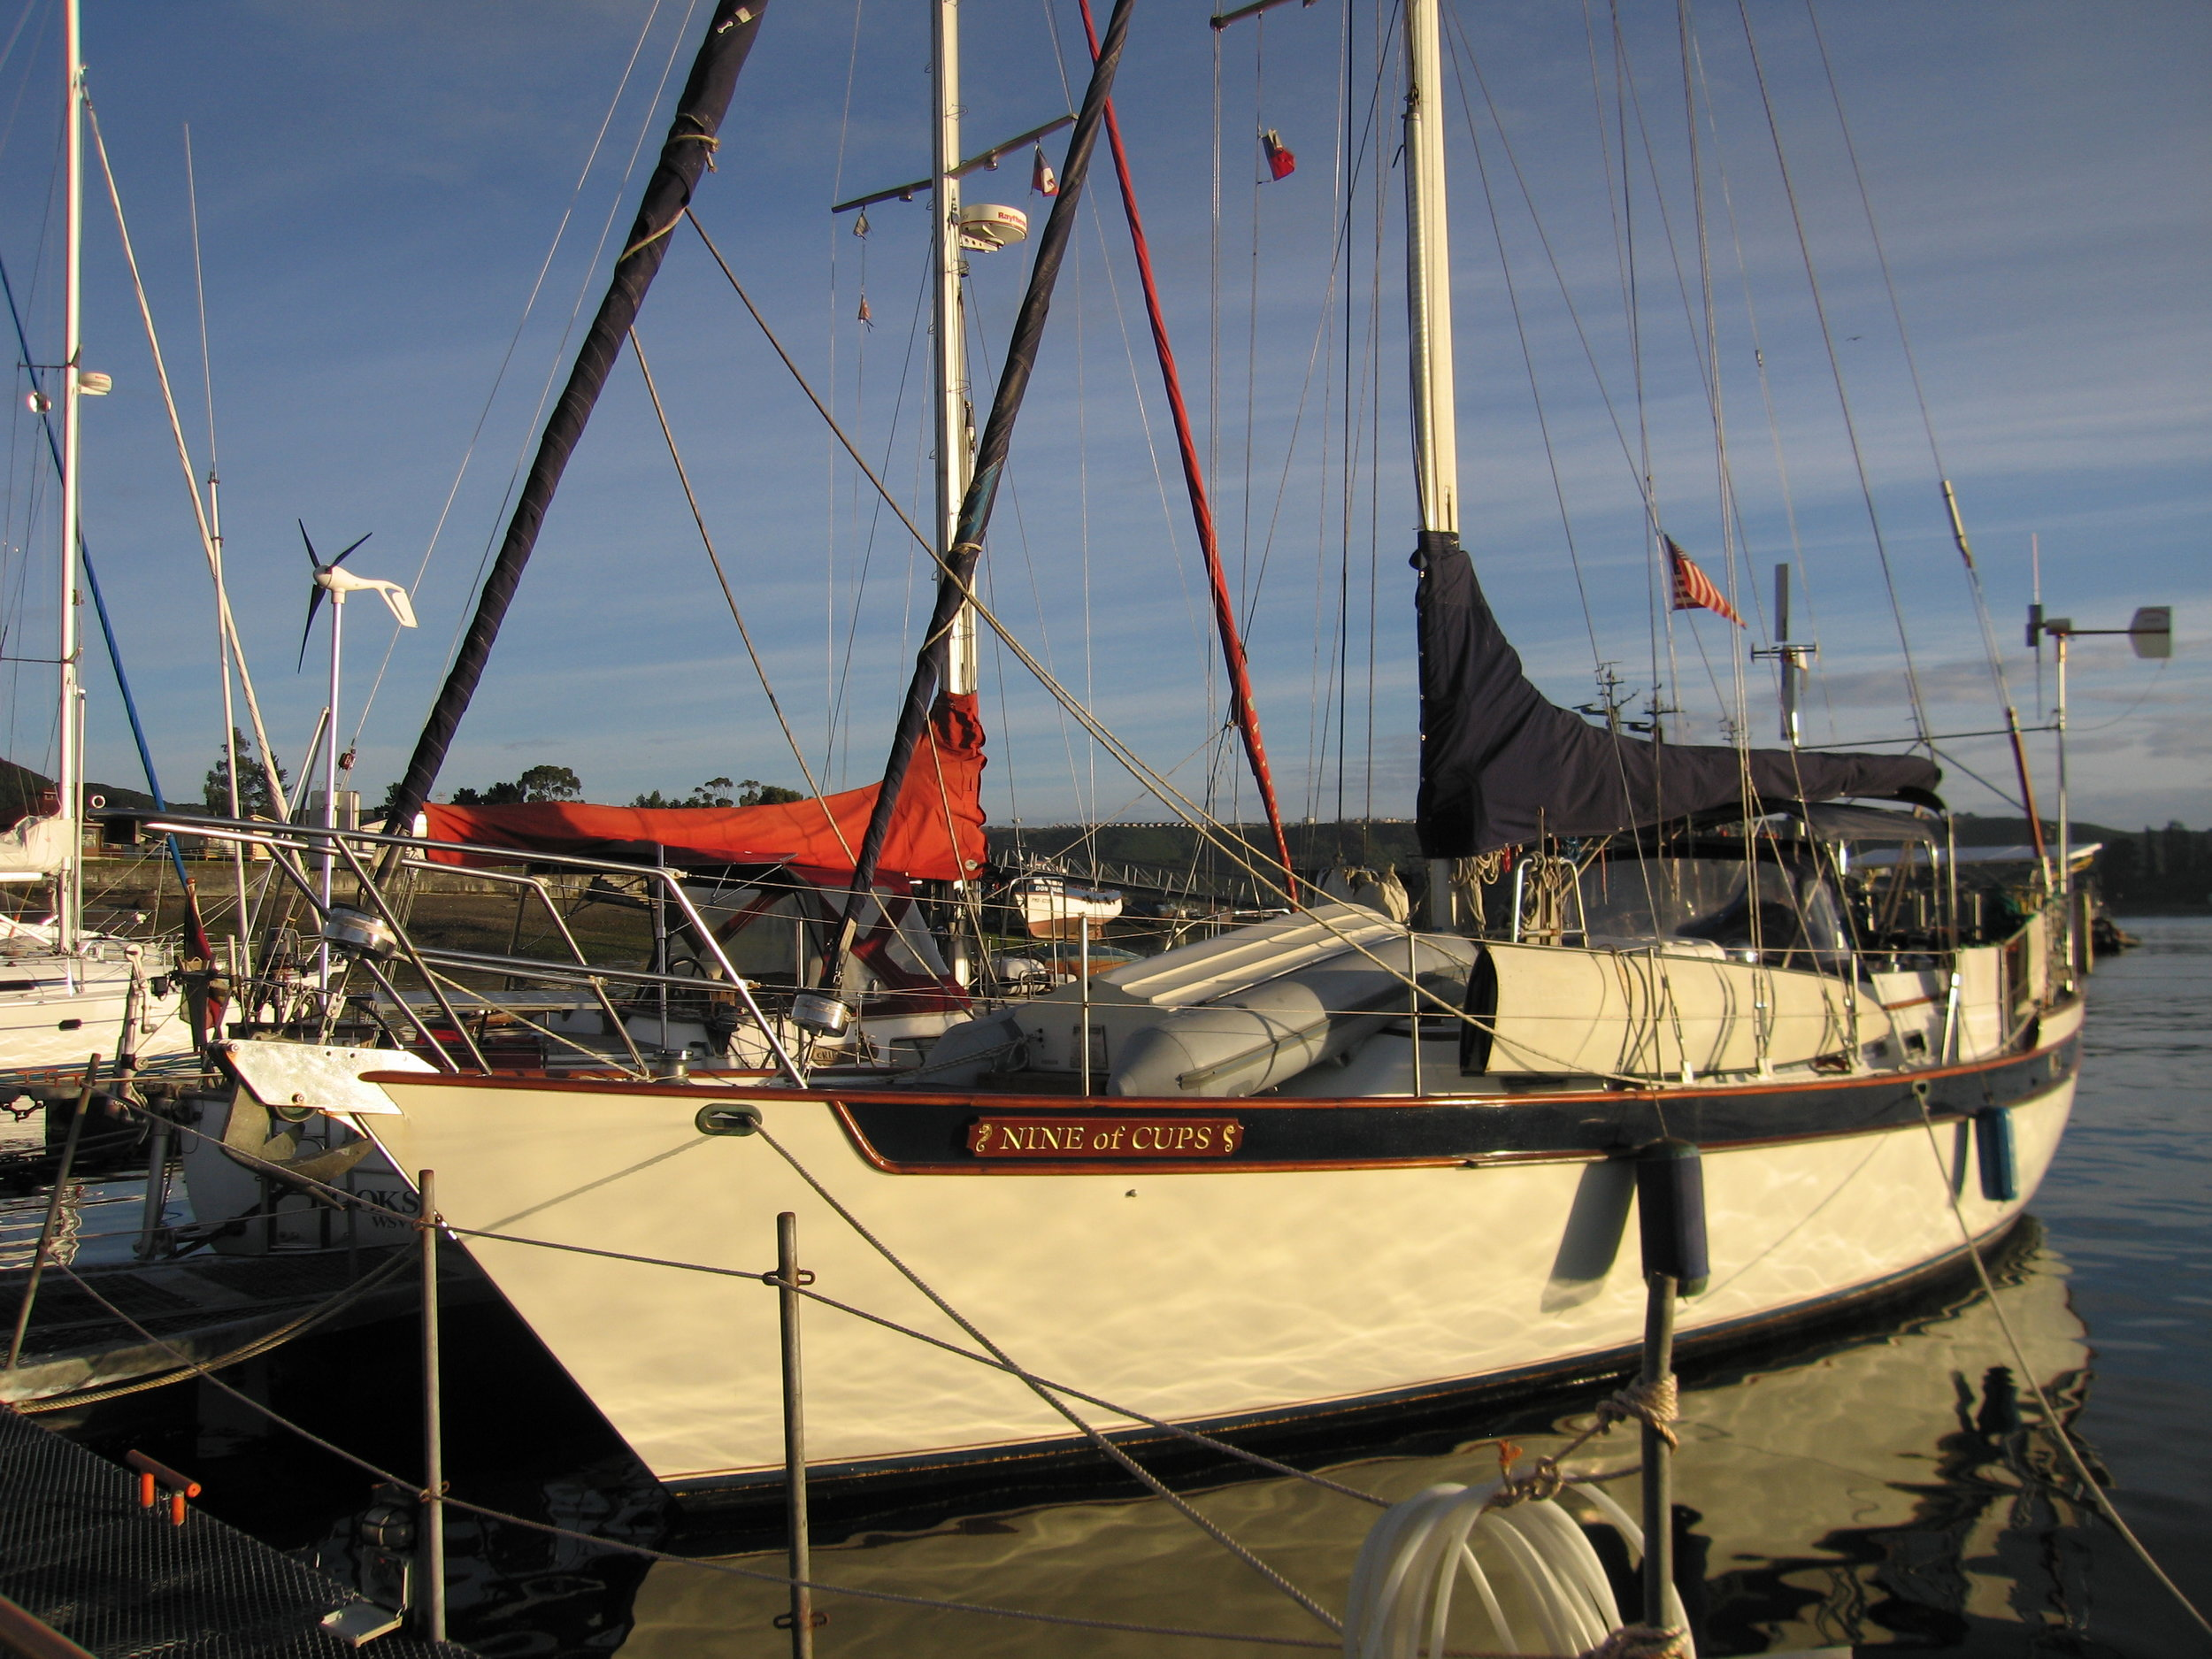 Nine of Cups berthed at Club Nautico in Puerto Montt, Chile